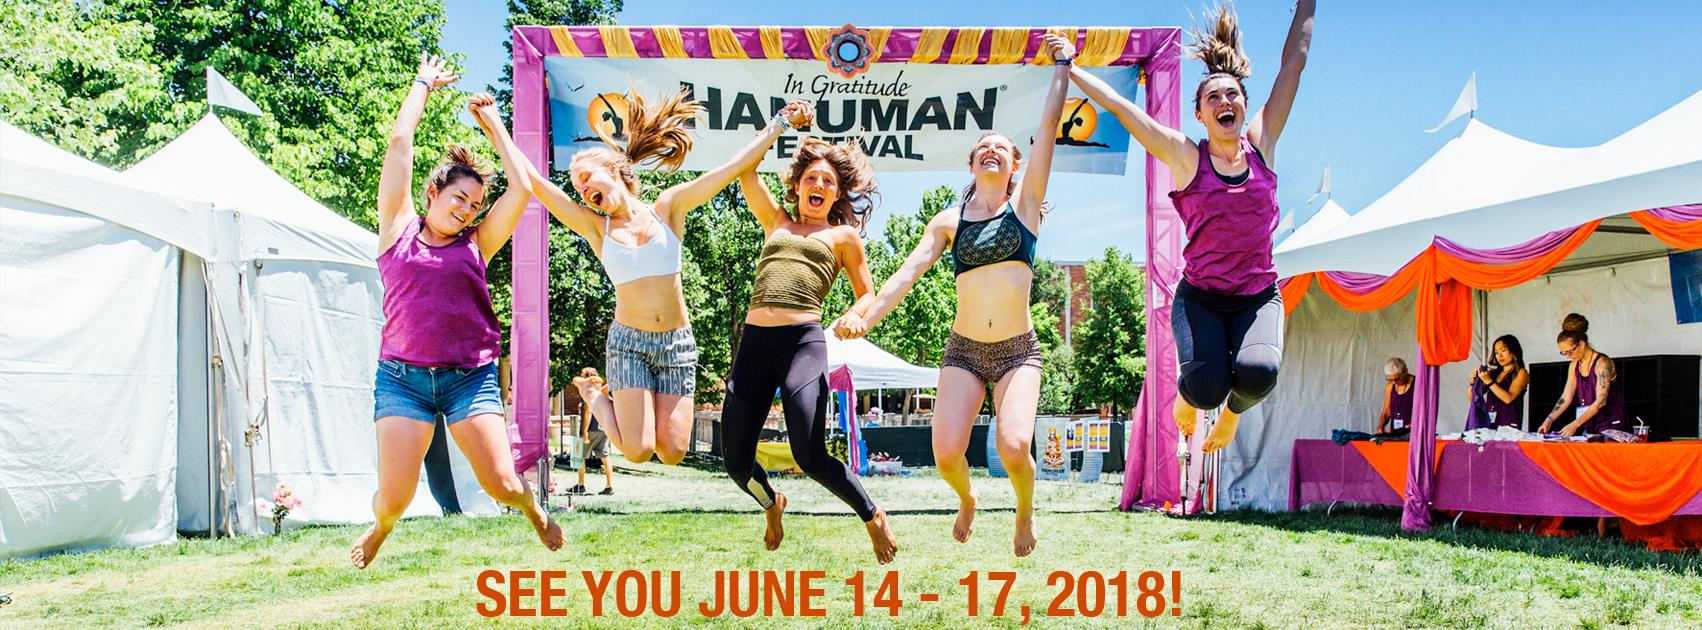 Photo Credit: Hanuman Festival Facebook Page